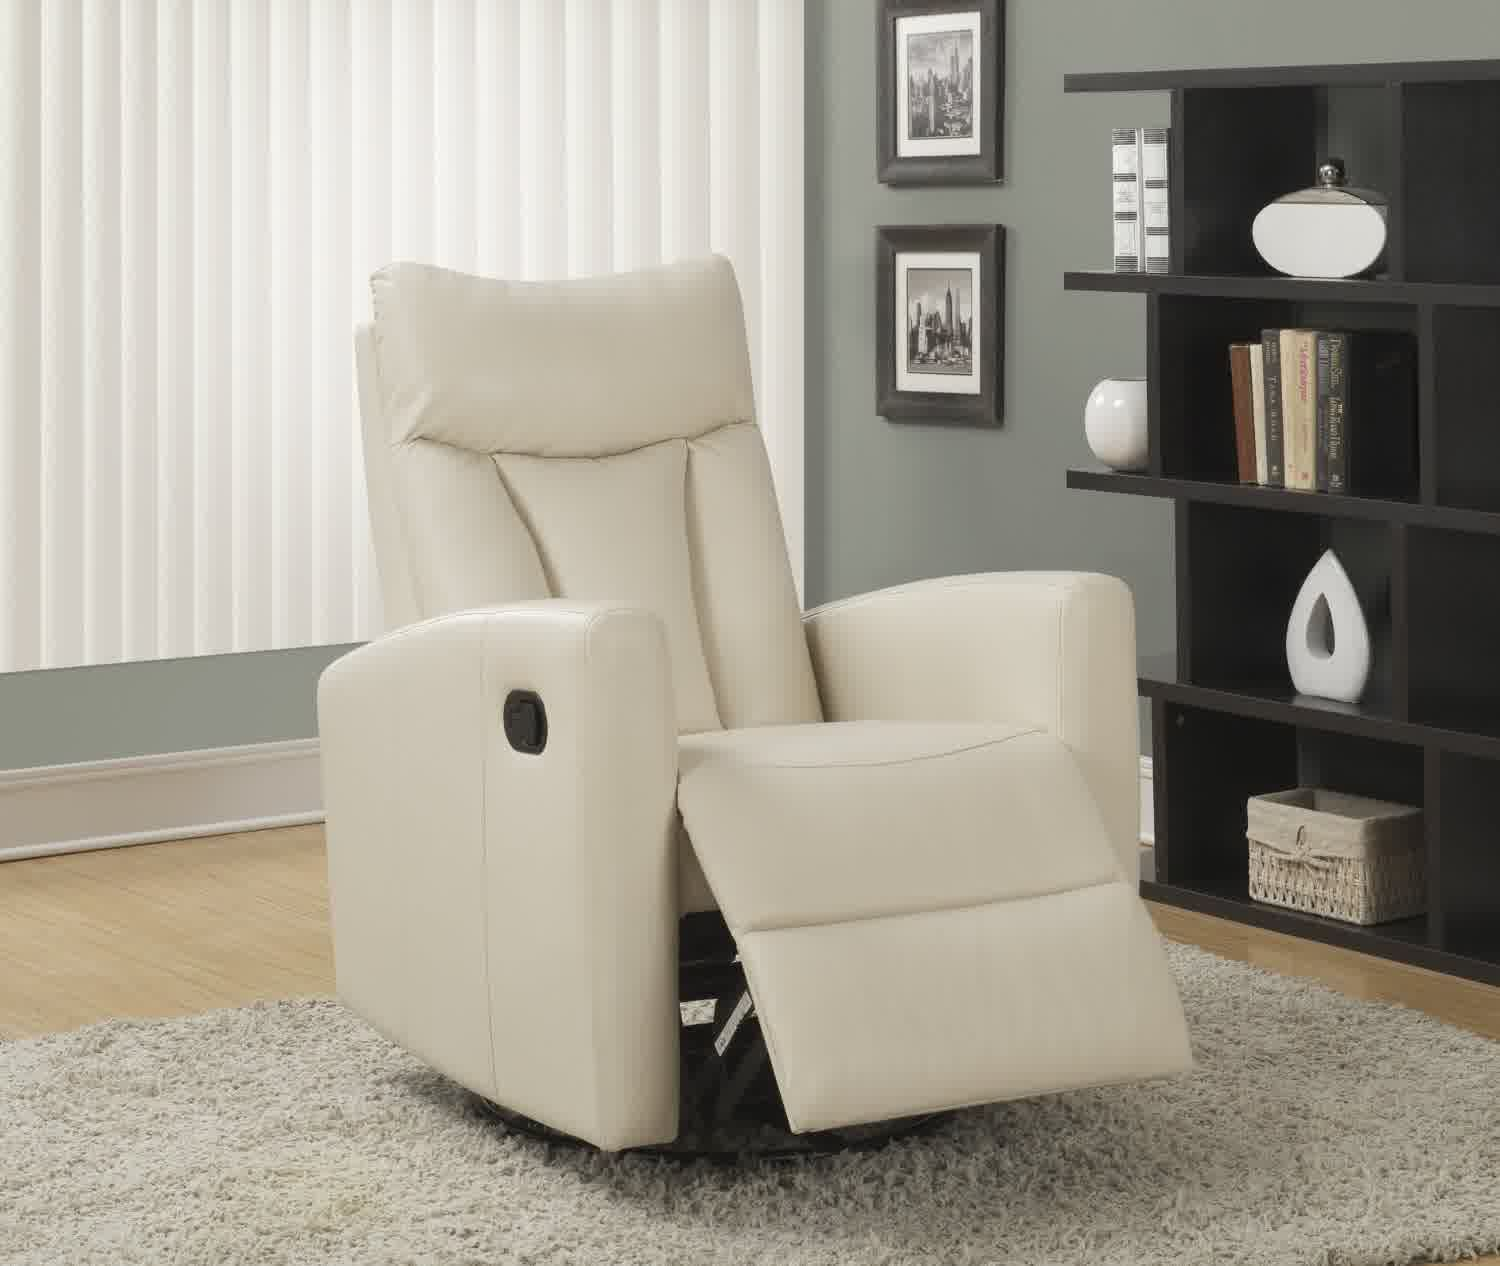 Artwork of recliners that donut look like recliners that offer a